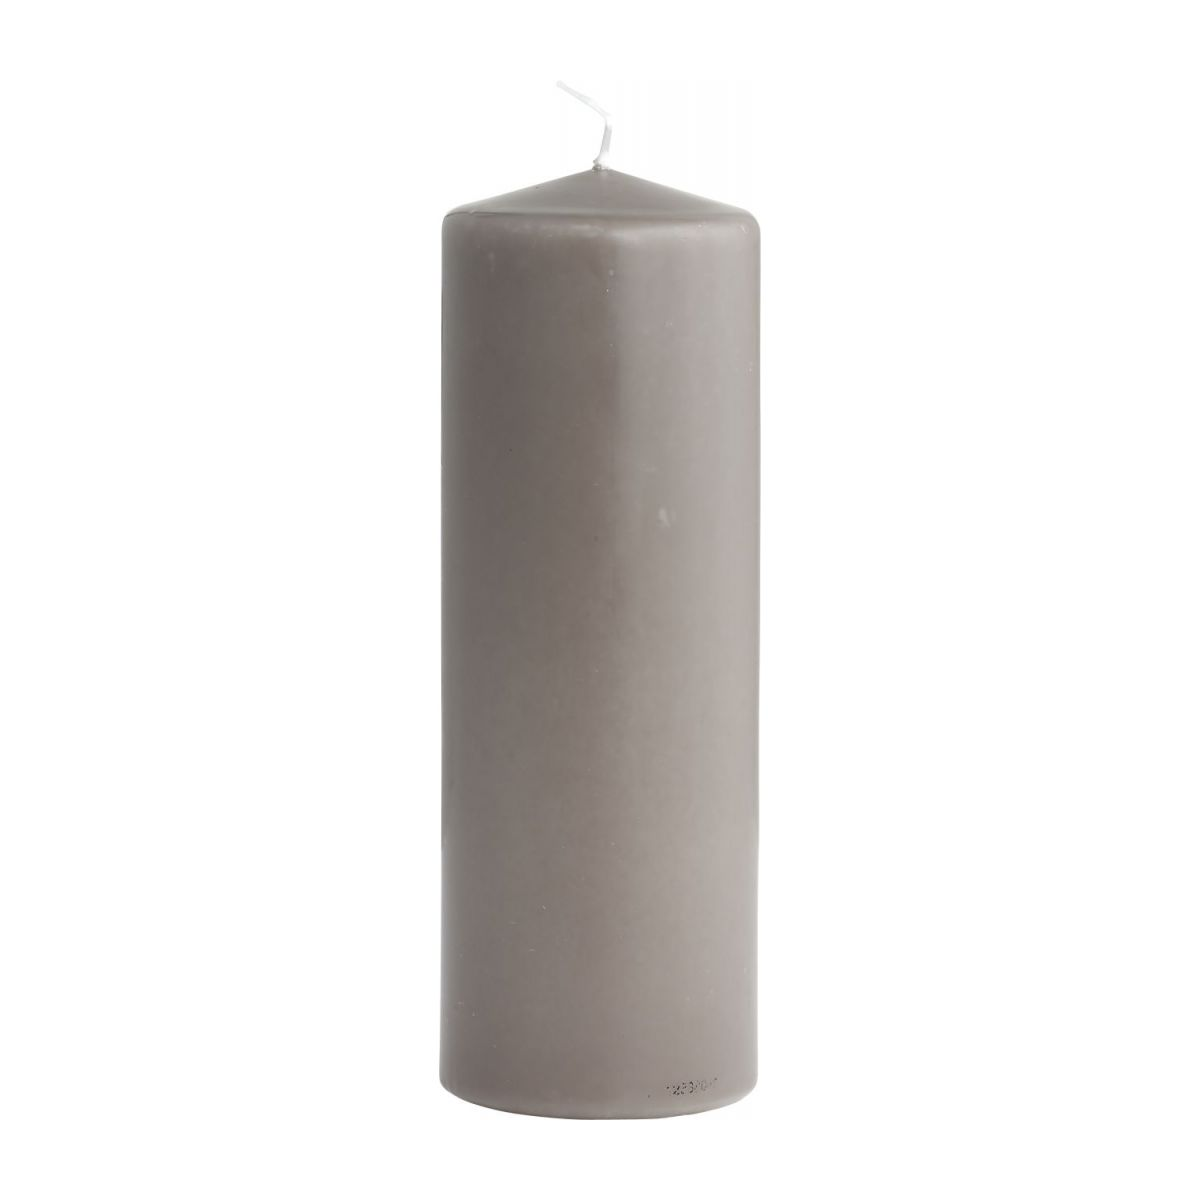 Bois Et Bougies Everyday Bougie Cylindre 20cm Taupe